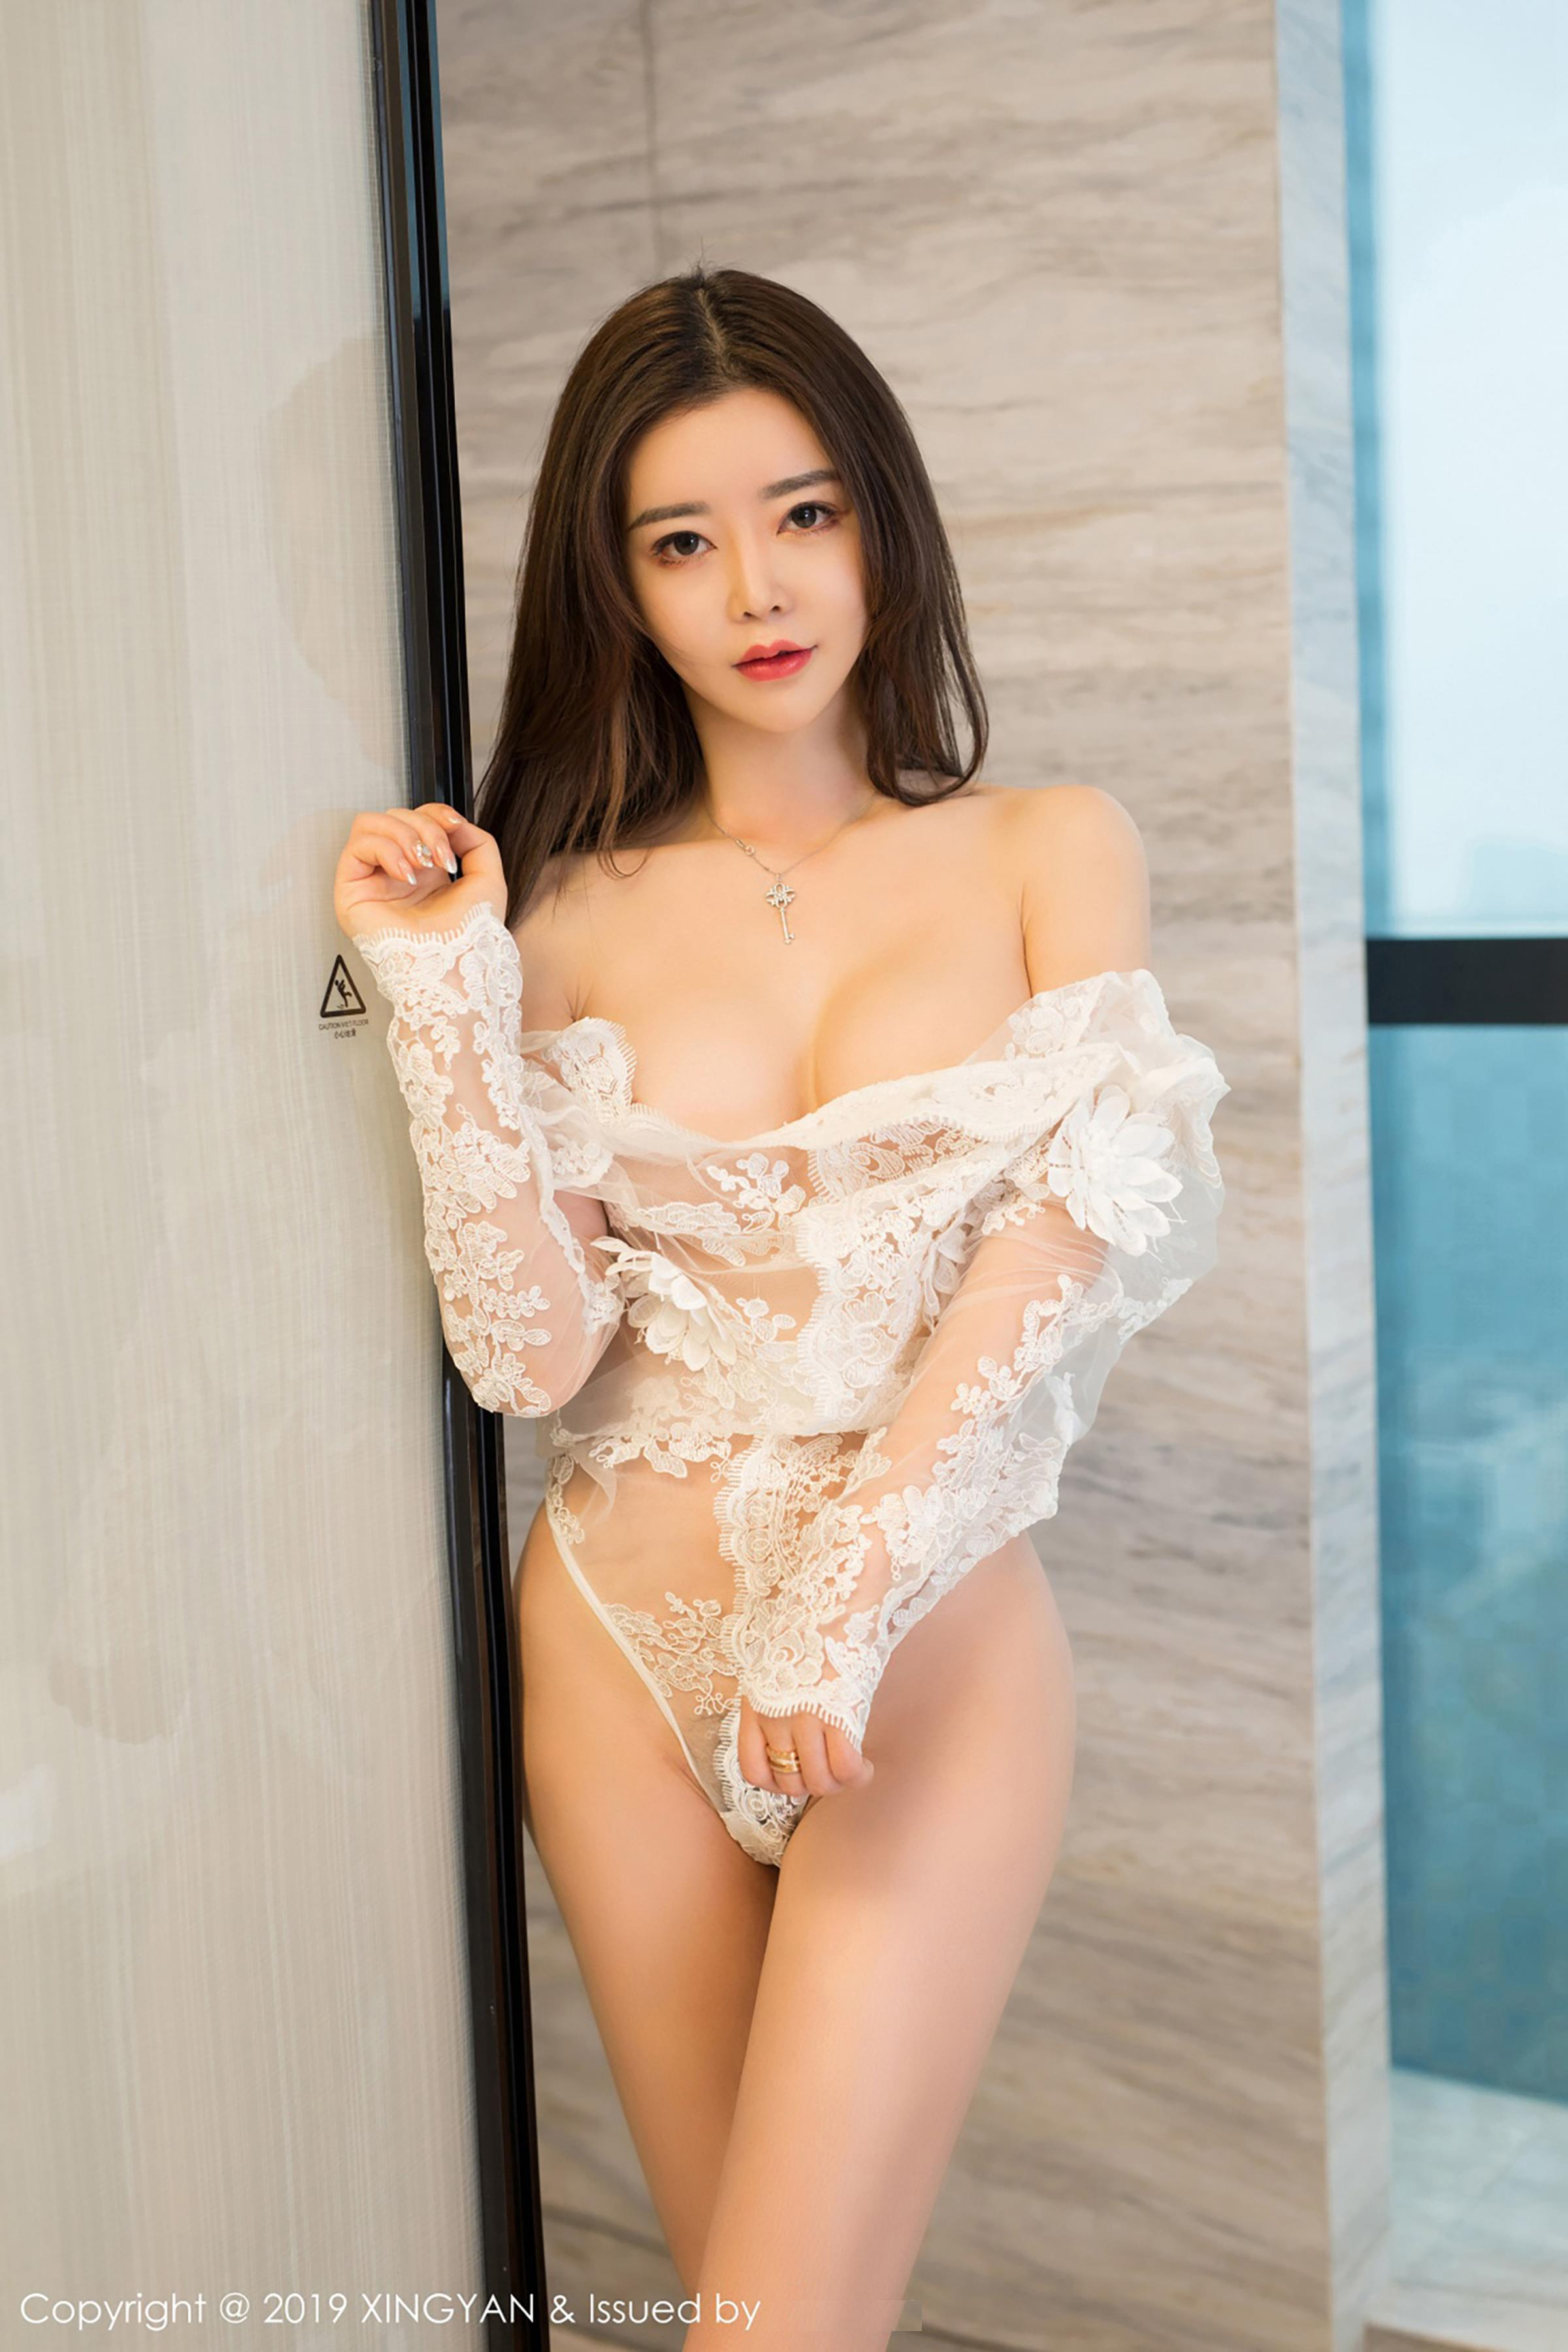 cool Chinese girl in see through lingerie